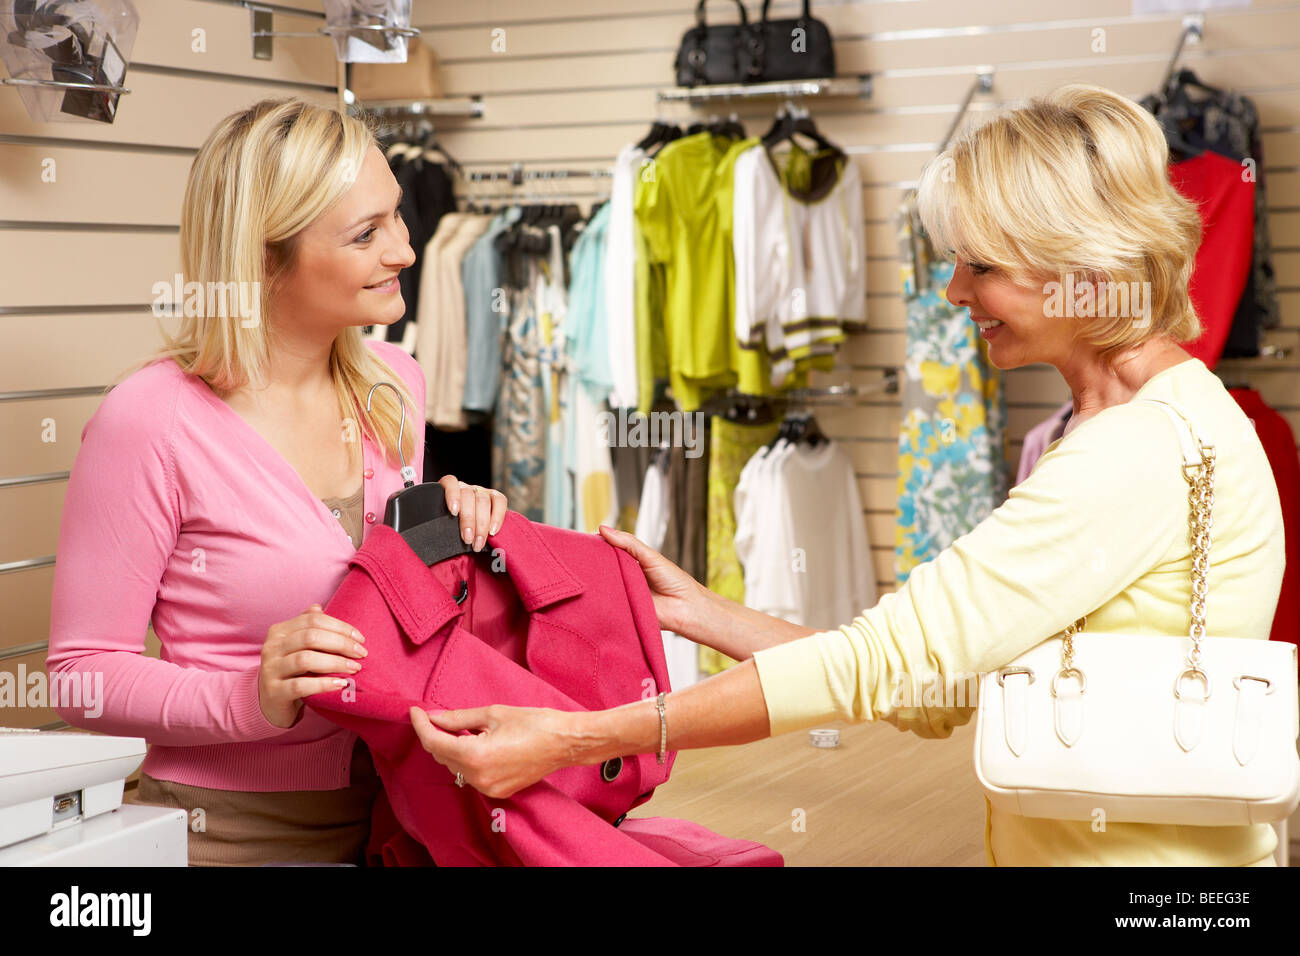 Sales assistant with customer in clothing store - Stock Image